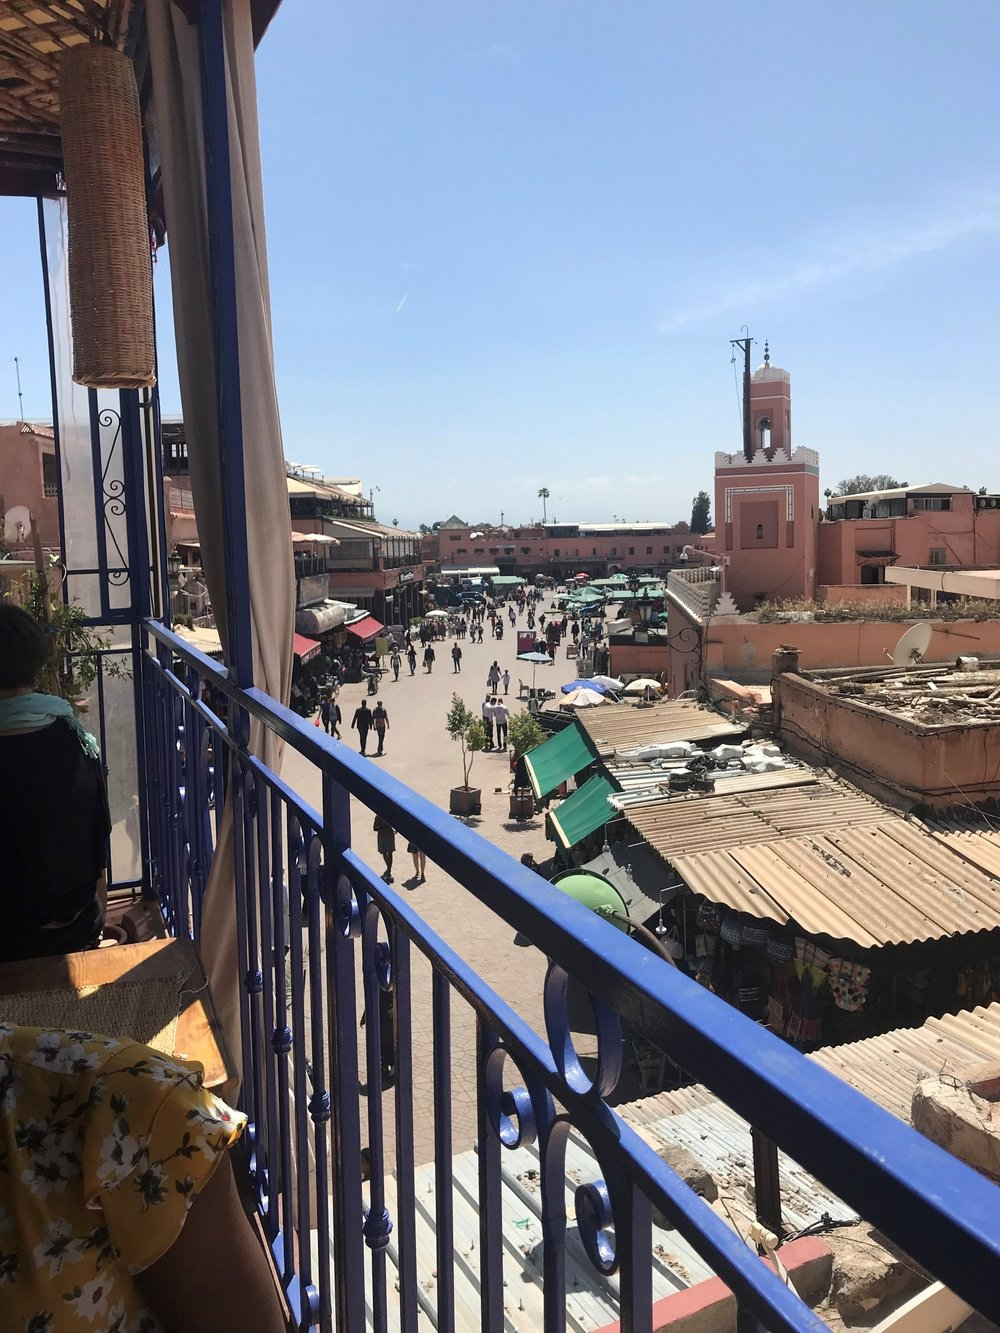 The medina in Marrakech. Photo credit: Rehman, 2018